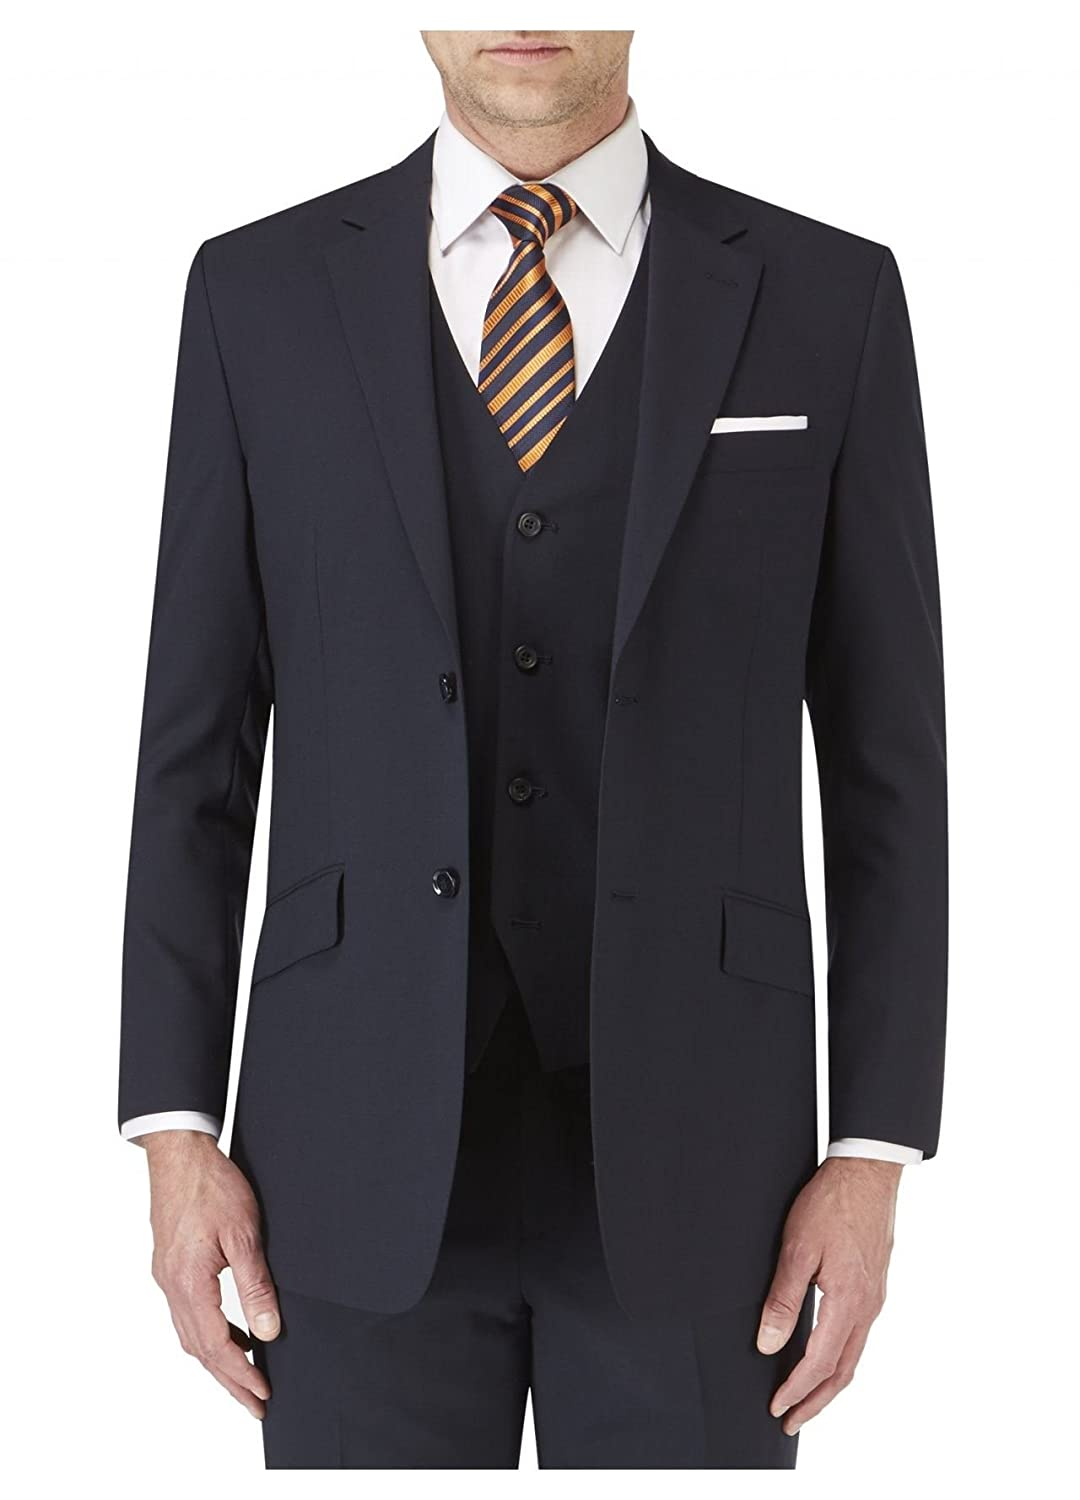 SKOPES Wool Rich Darwin Navy Suit Jacket in Size 34 To 72, S/R/L